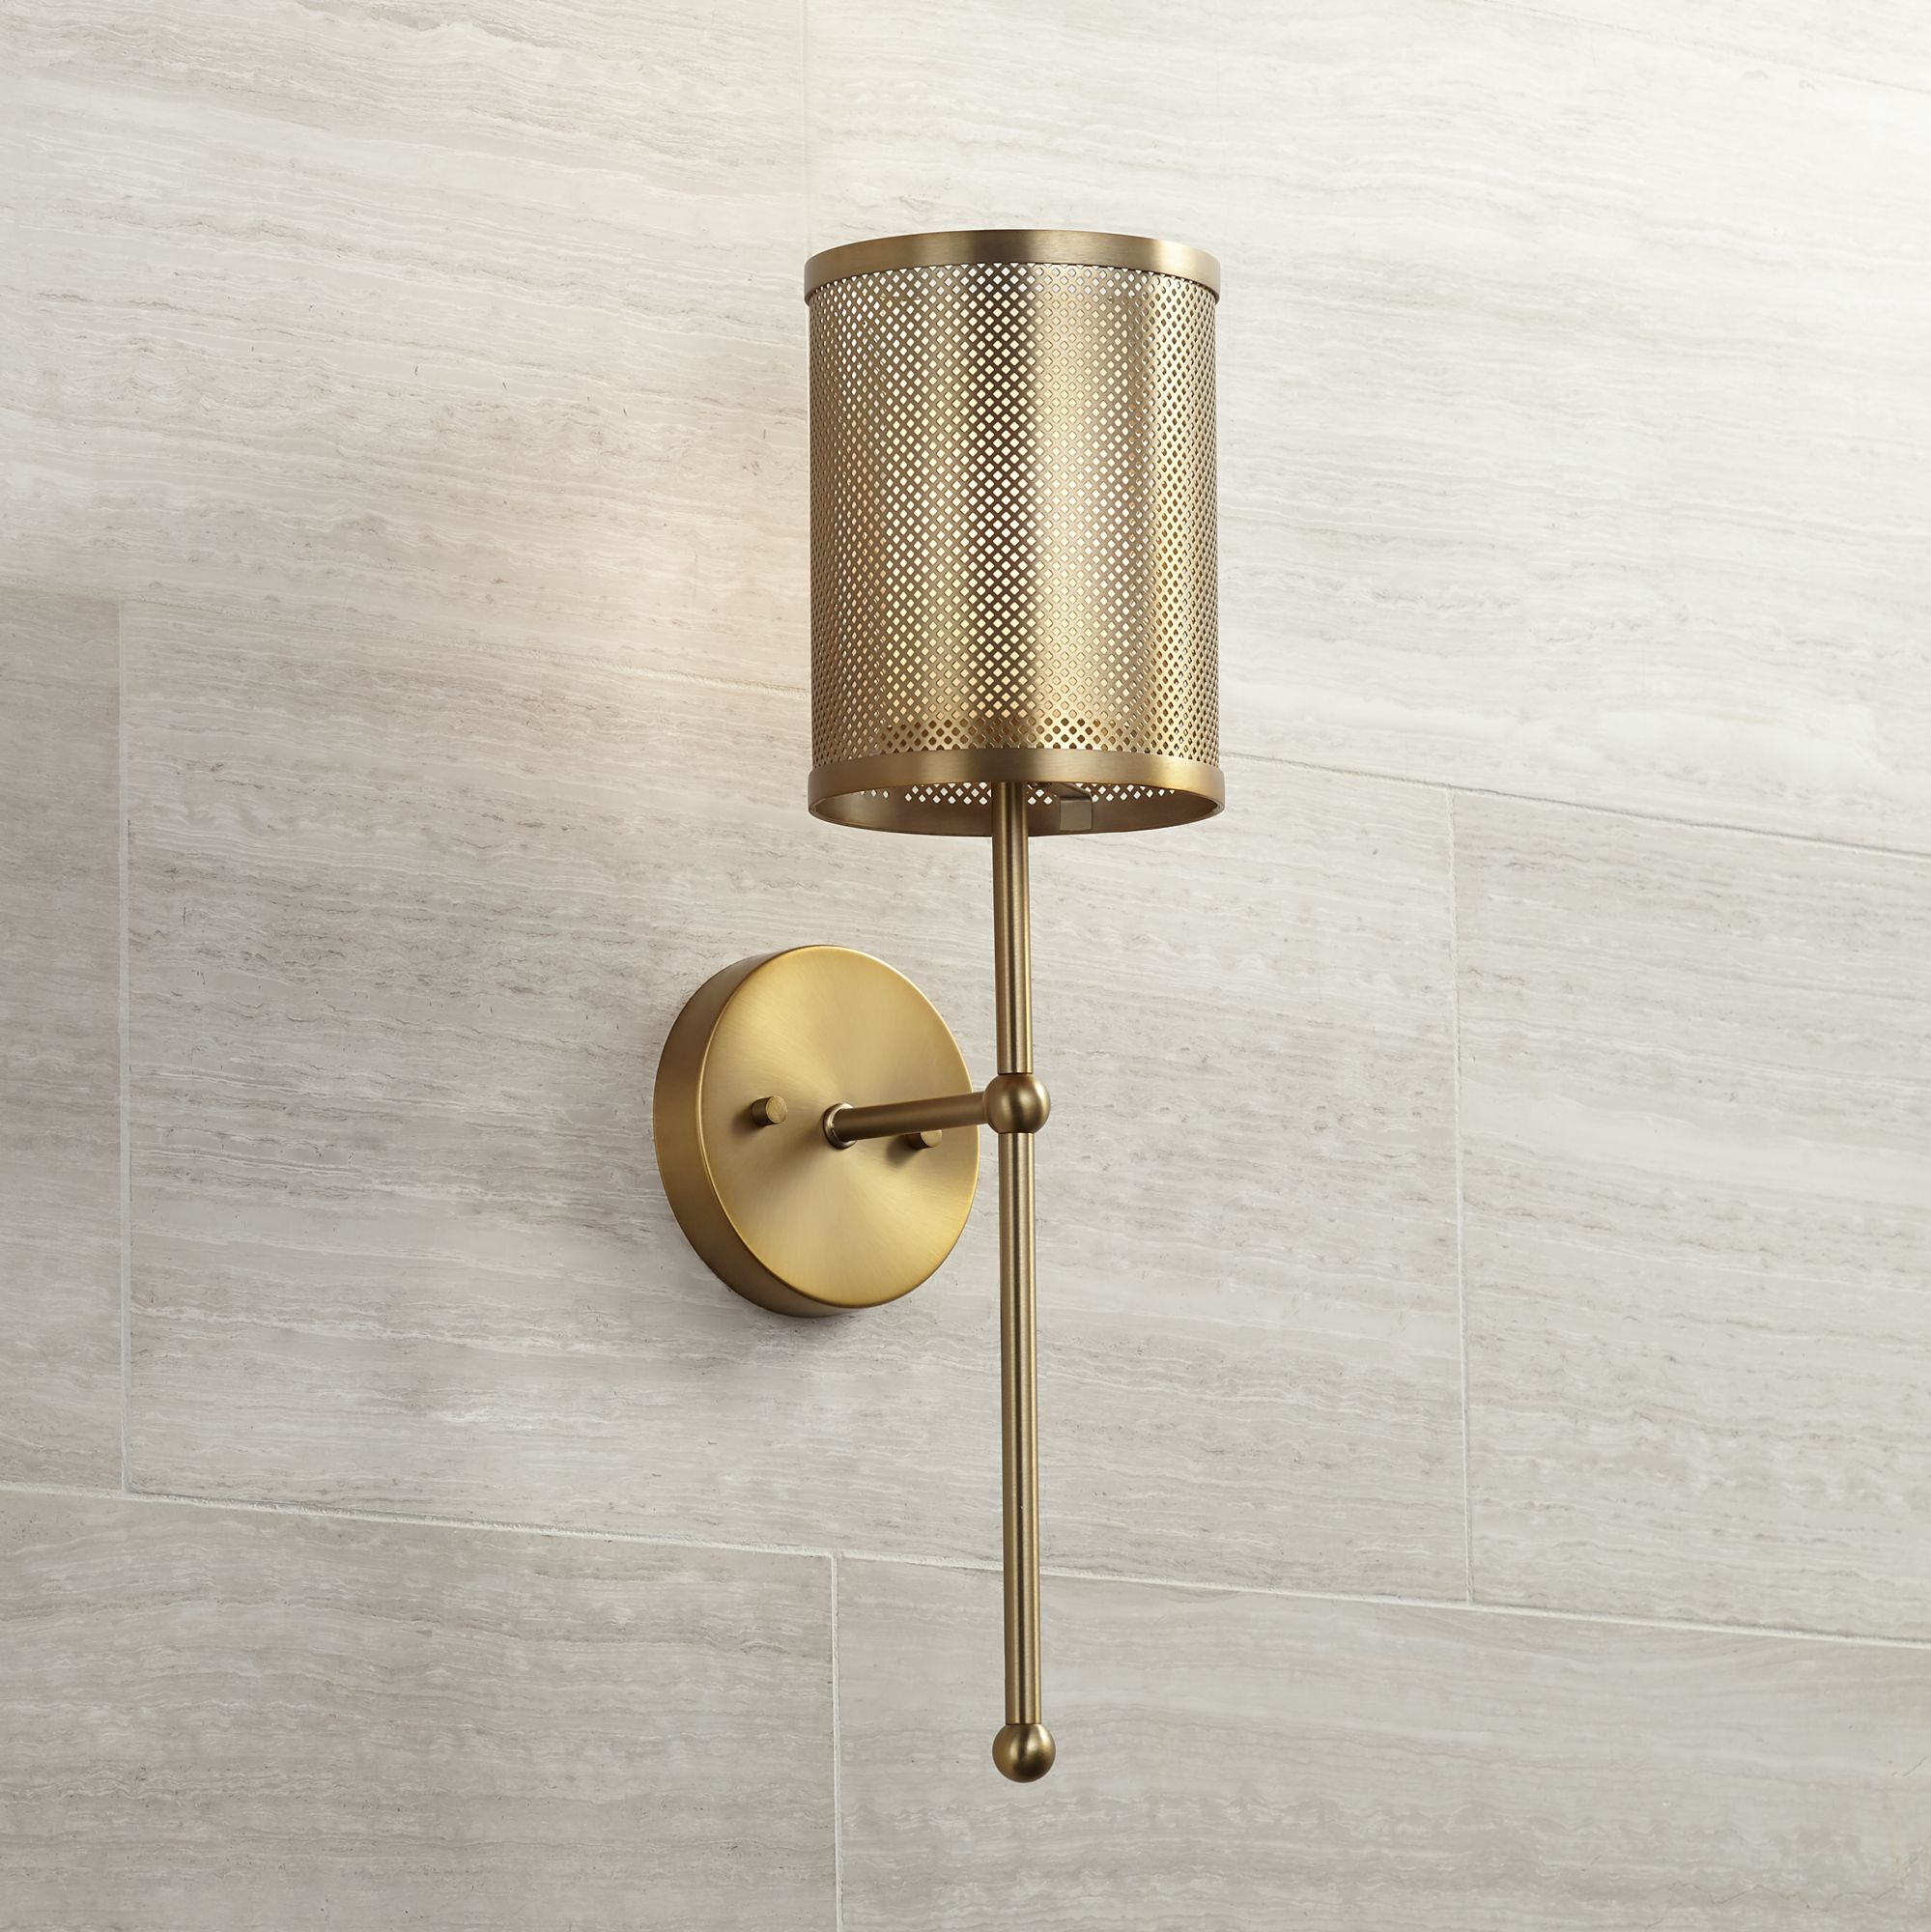 Possini Euro Vivaldi 21  High Warm Brass Wall Sconce : possini wall sconce - www.canuckmediamonitor.org